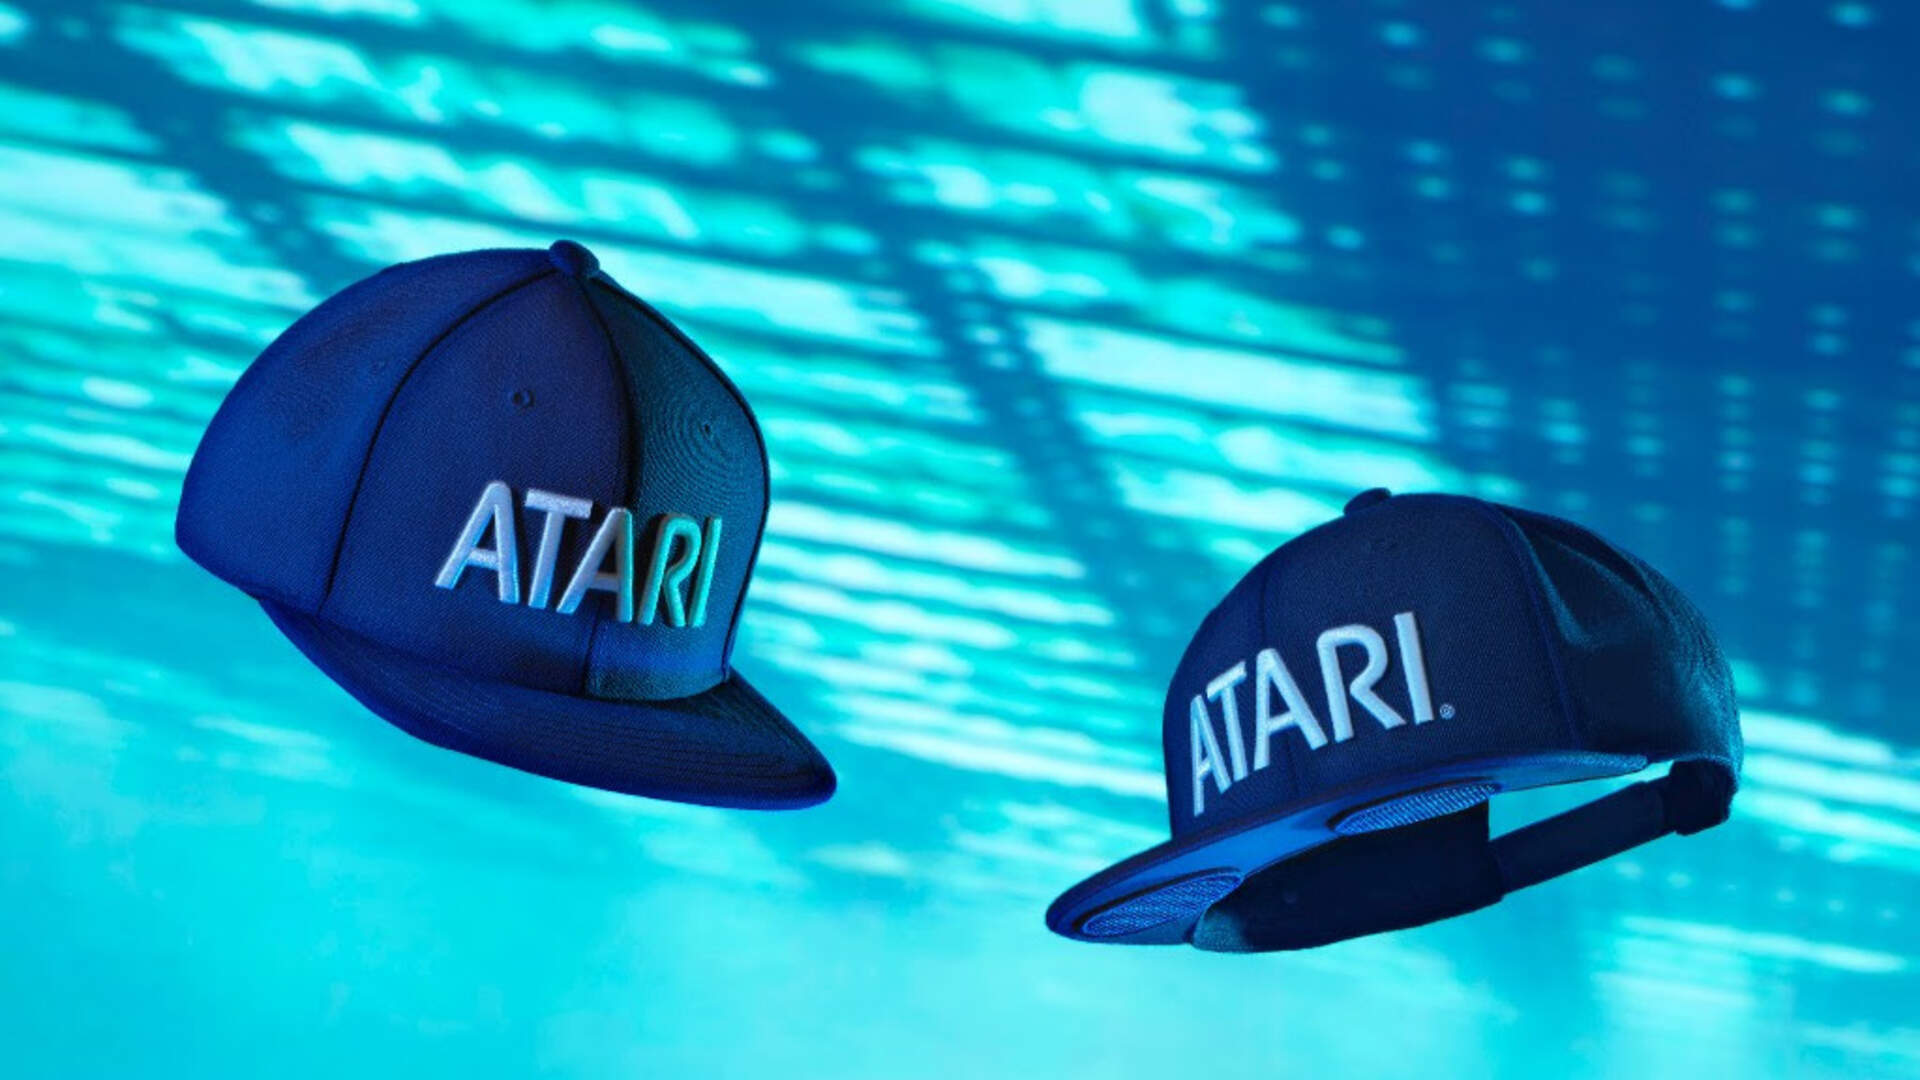 Atari Speakerhat Impressions: The Real Cyberpunk Dystopia is Falling in Love With This Hat